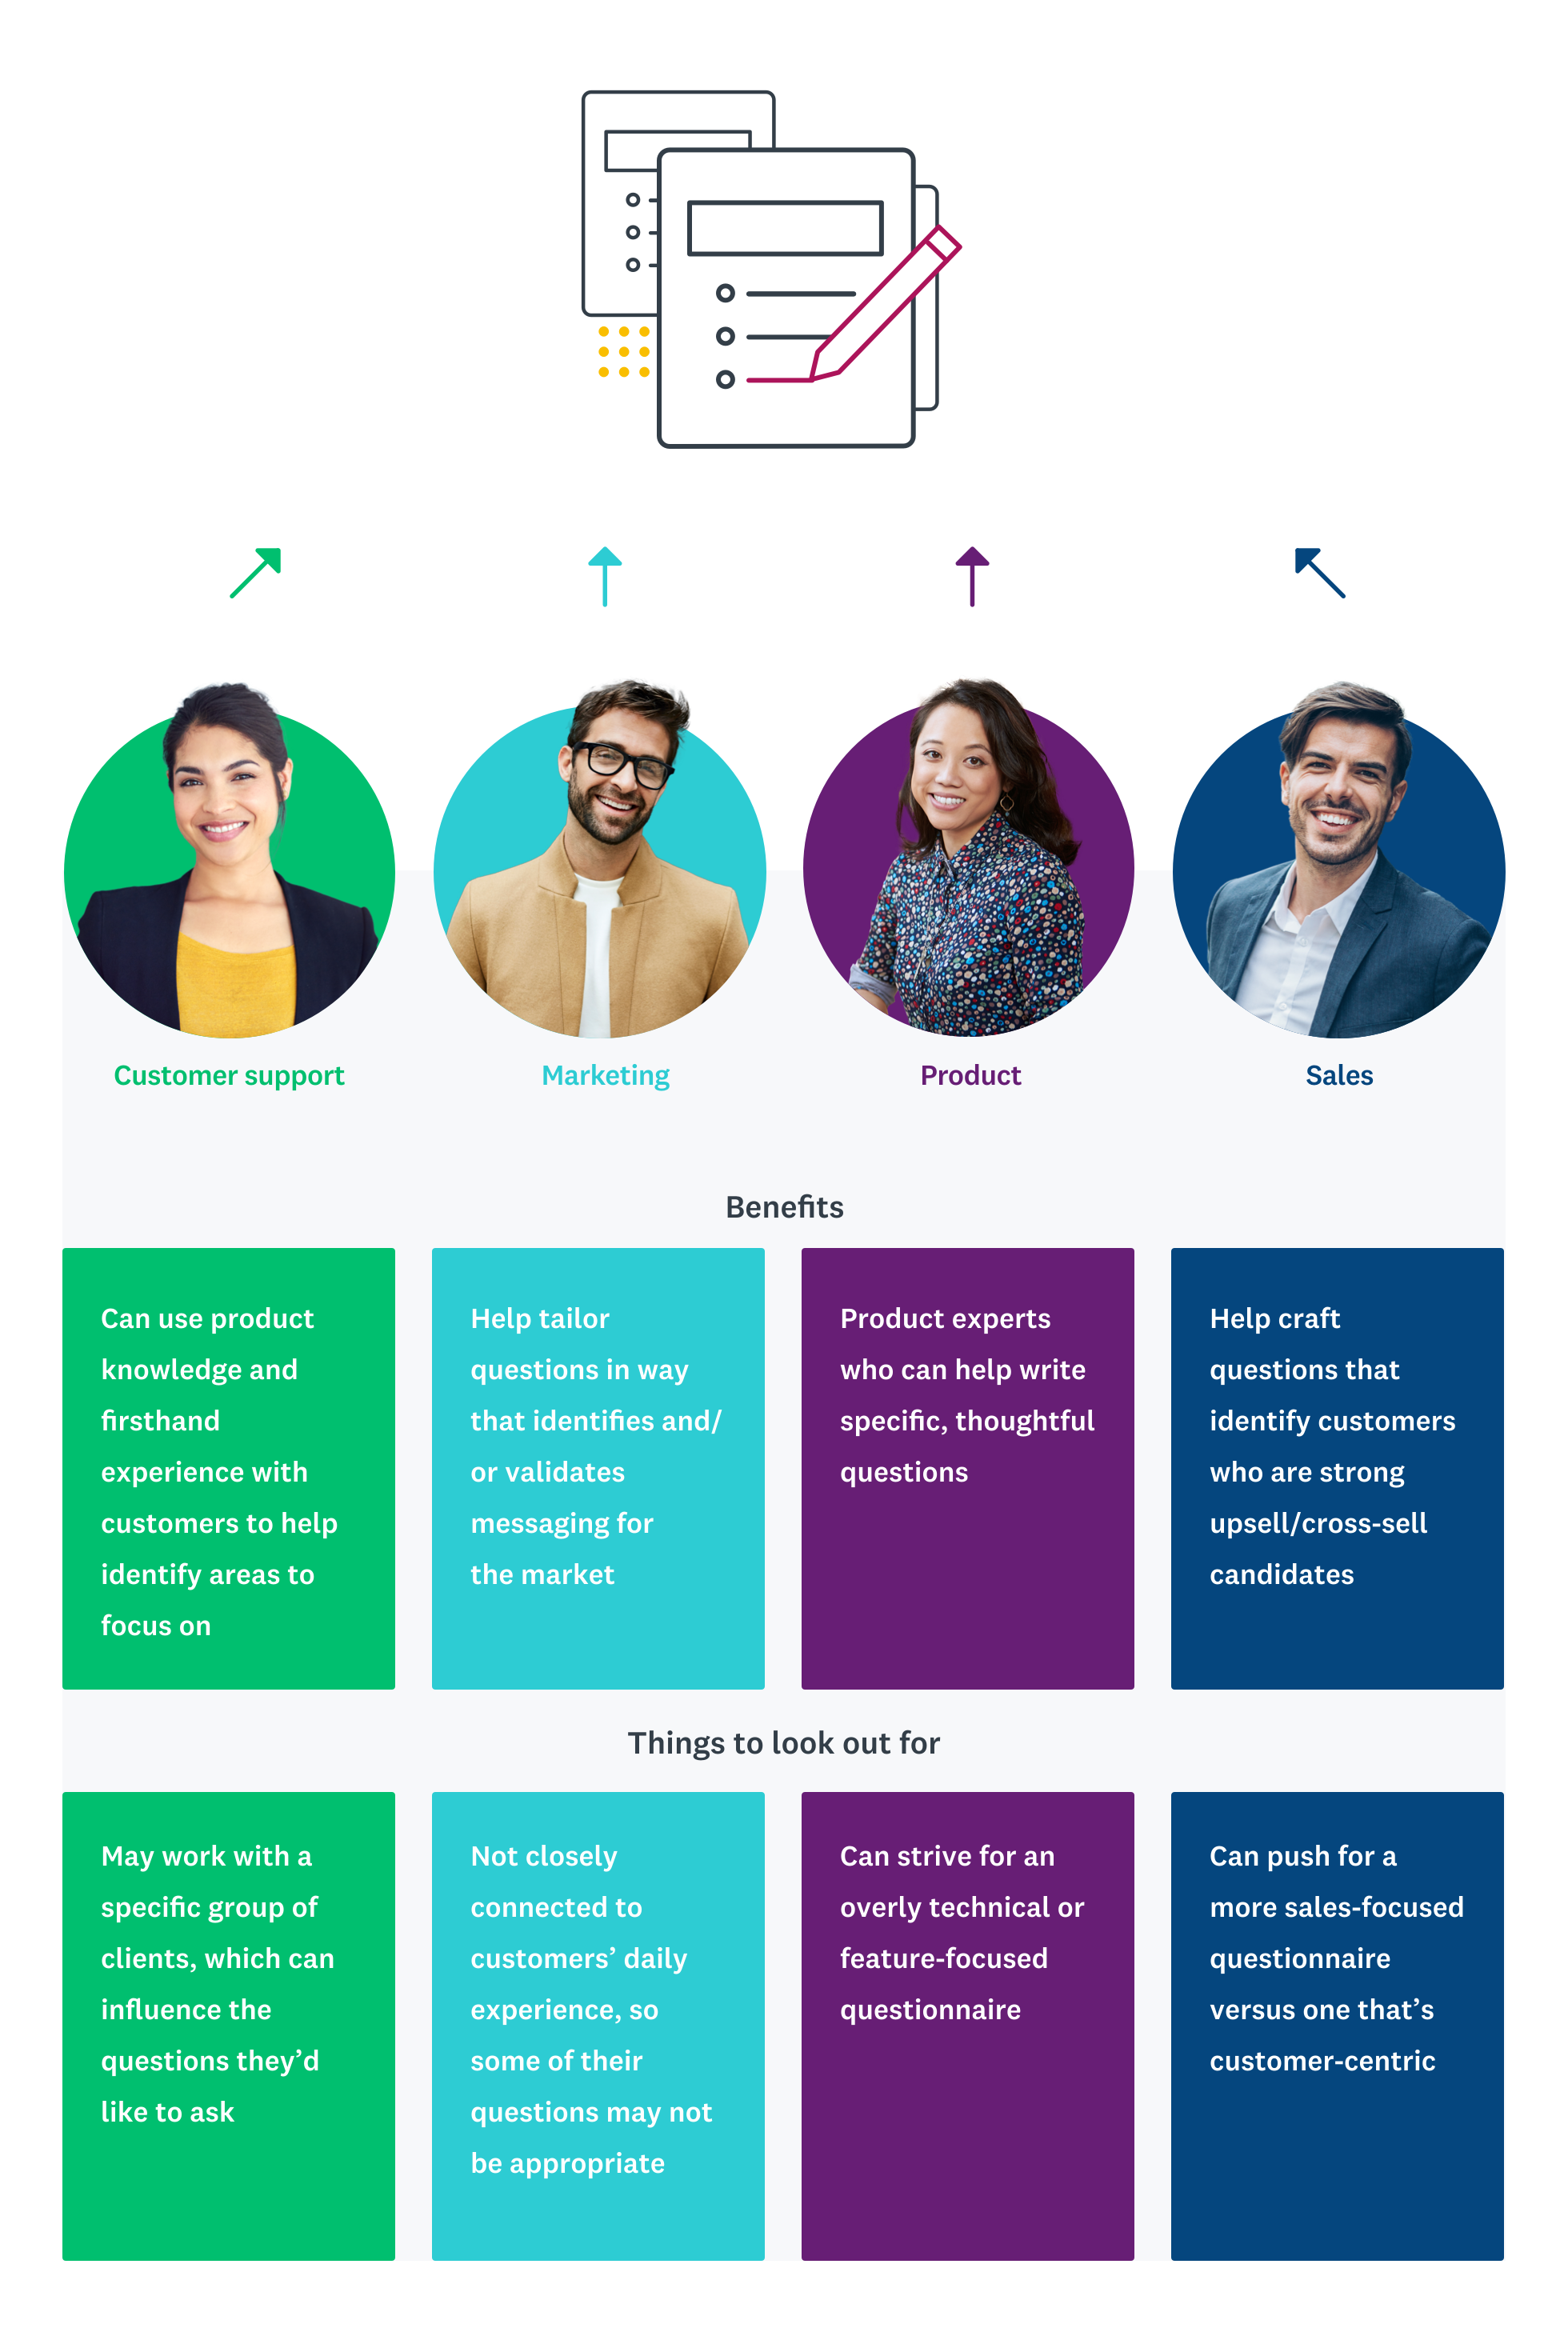 Different personas can use feedback surveys infographic